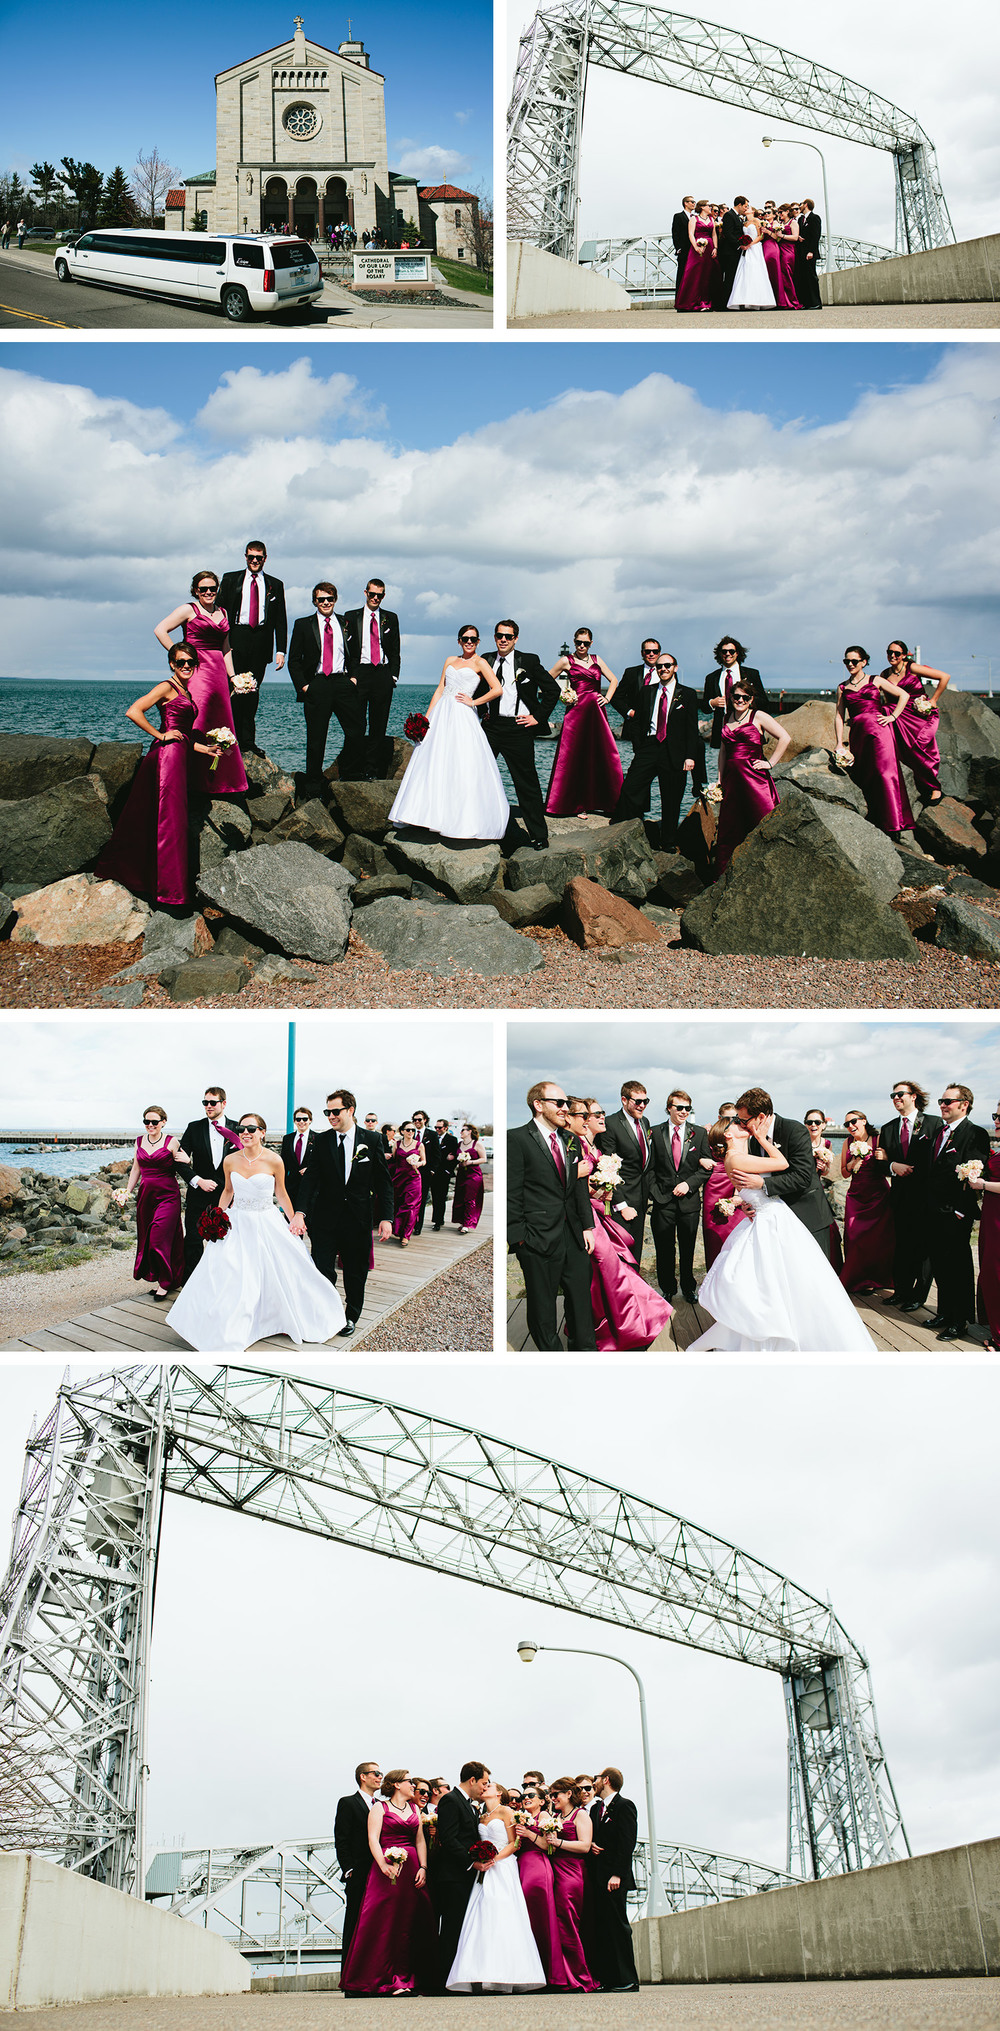 Canal Park Wedding party images with the lift bridge